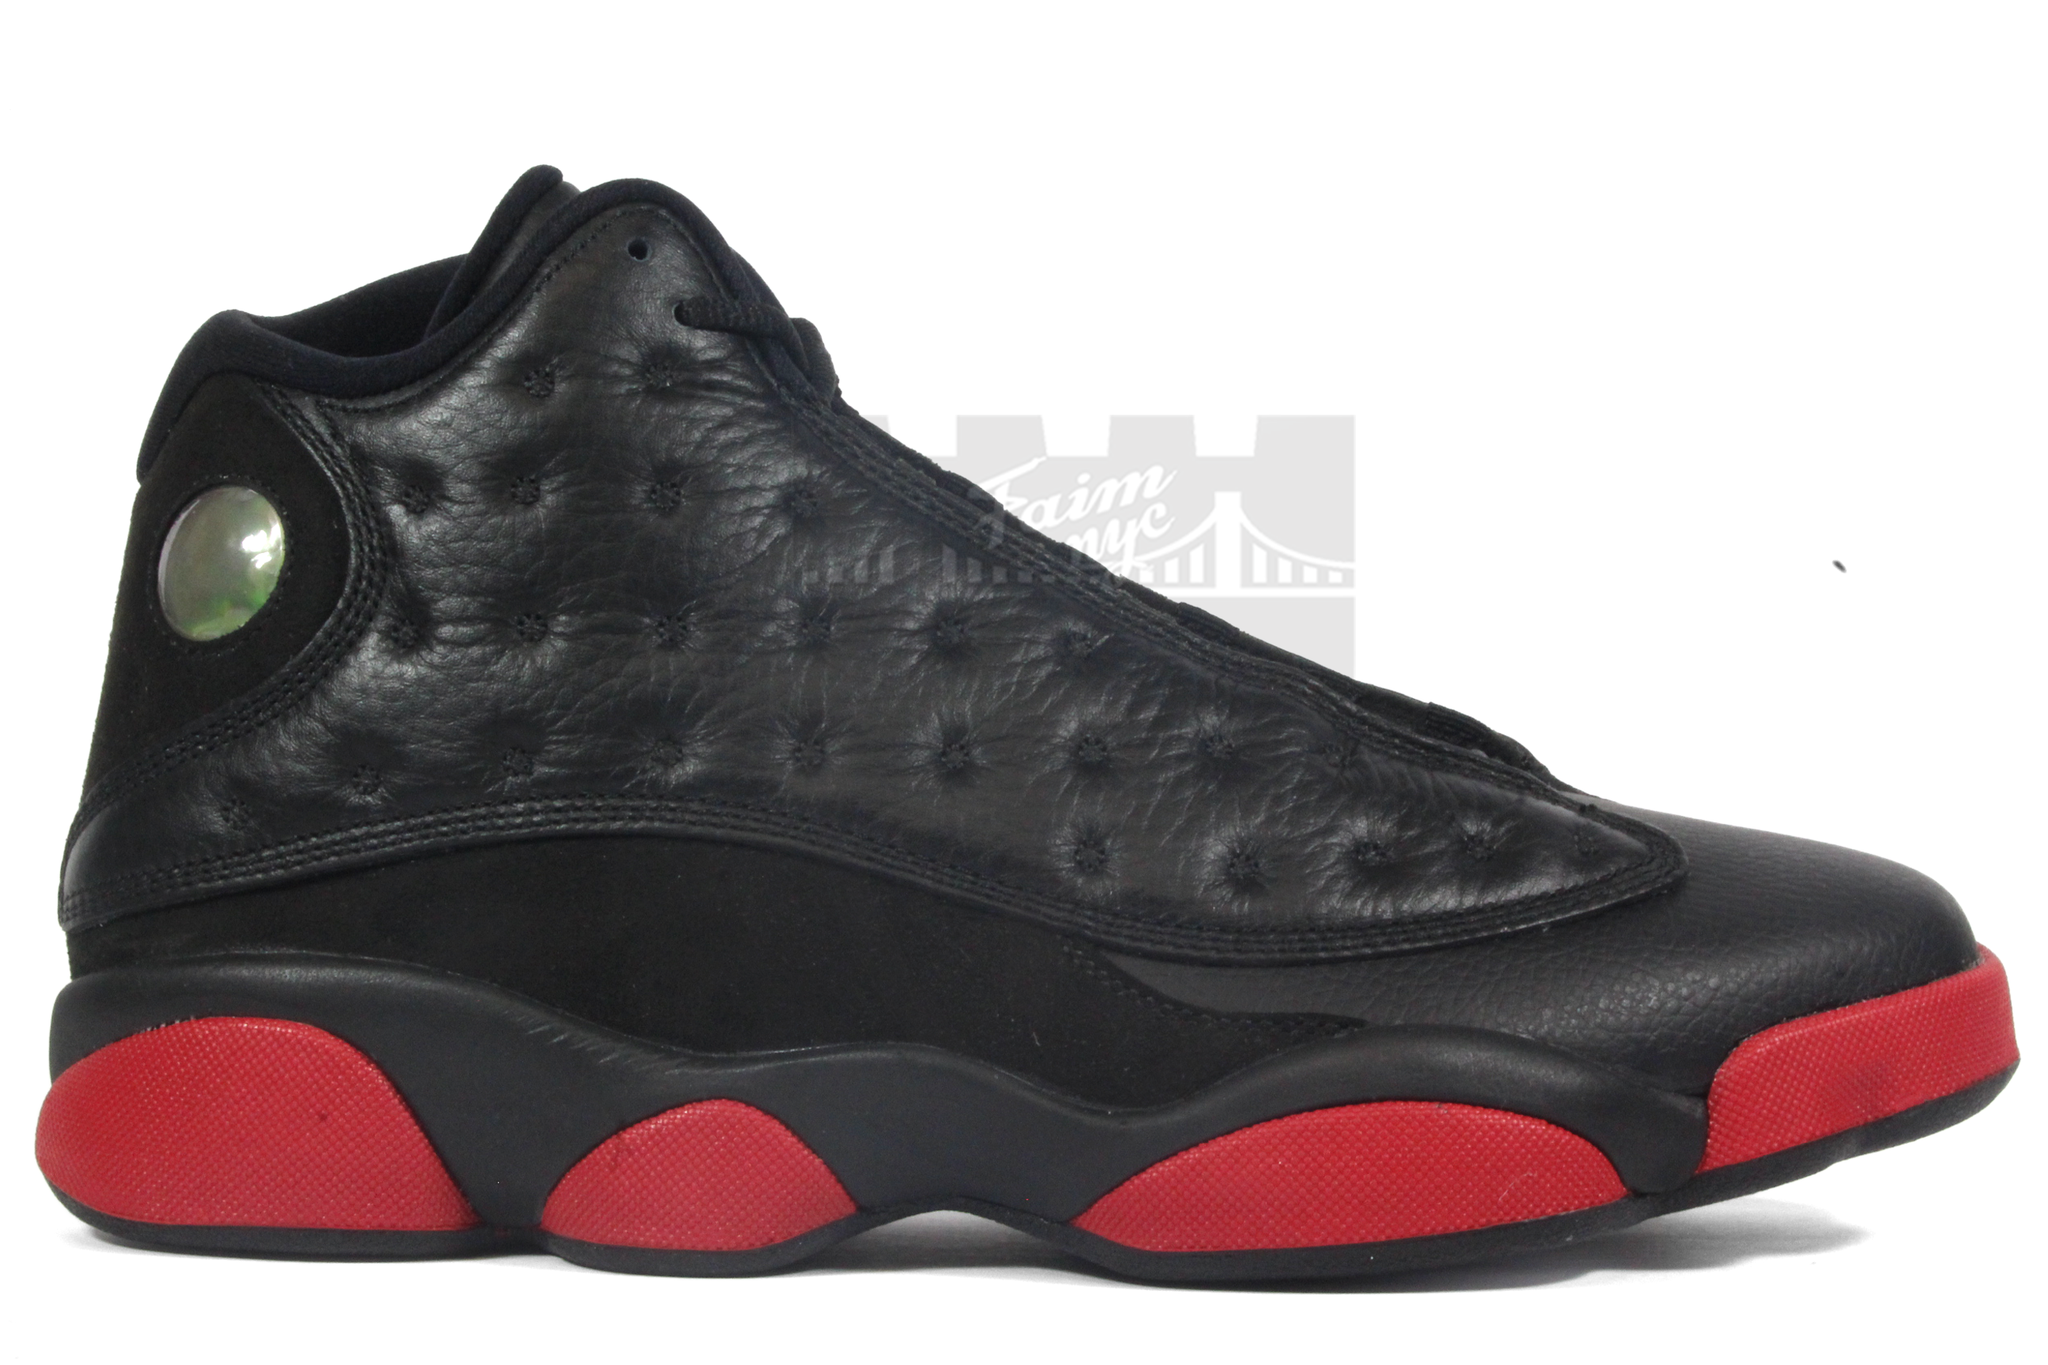 188311fb588c77 Air Jordan 13 Retro